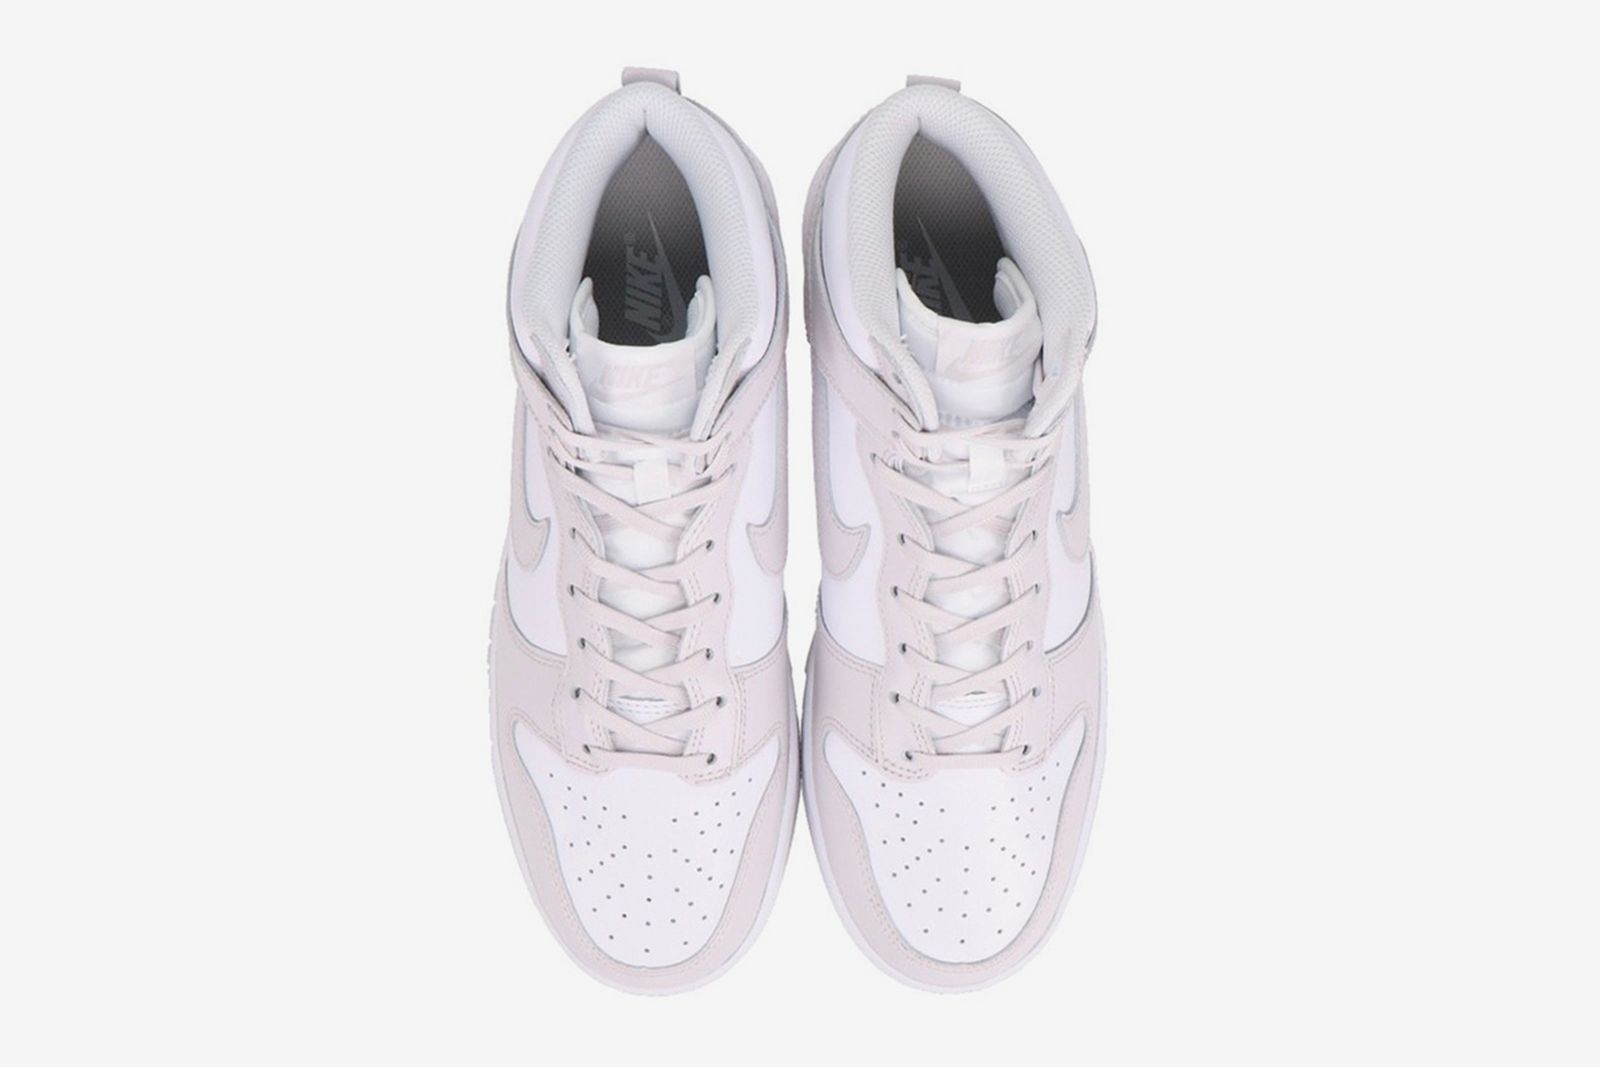 nike-dunks-january-2021-release-date-price-18